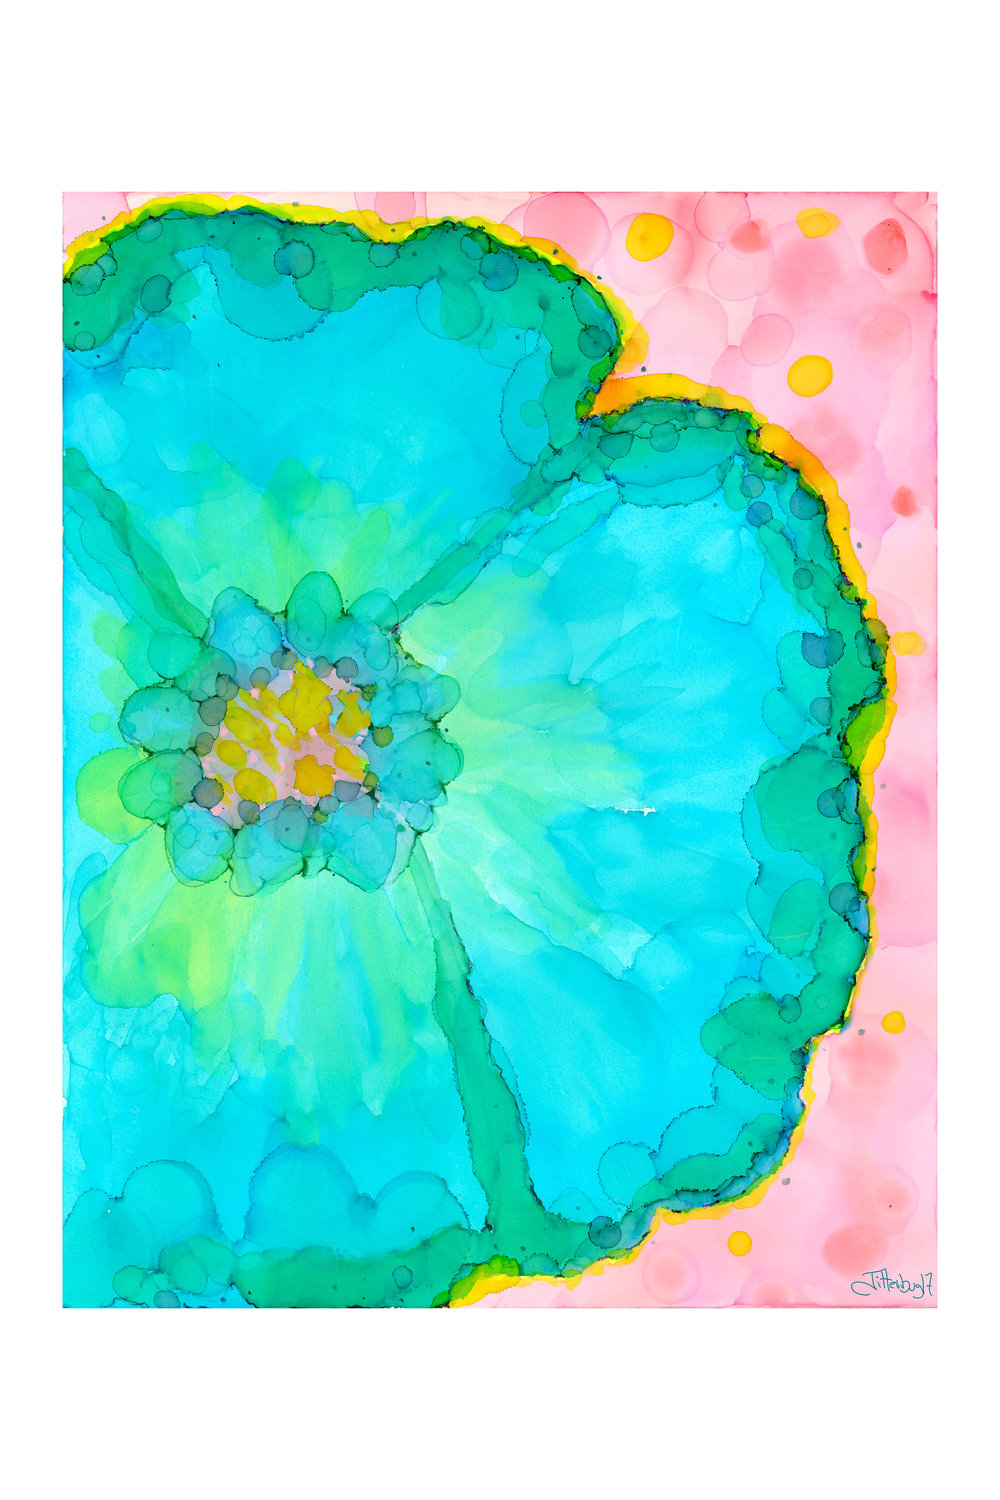 Dreamy Blue Daisy - Art Print on Paper or Canvas